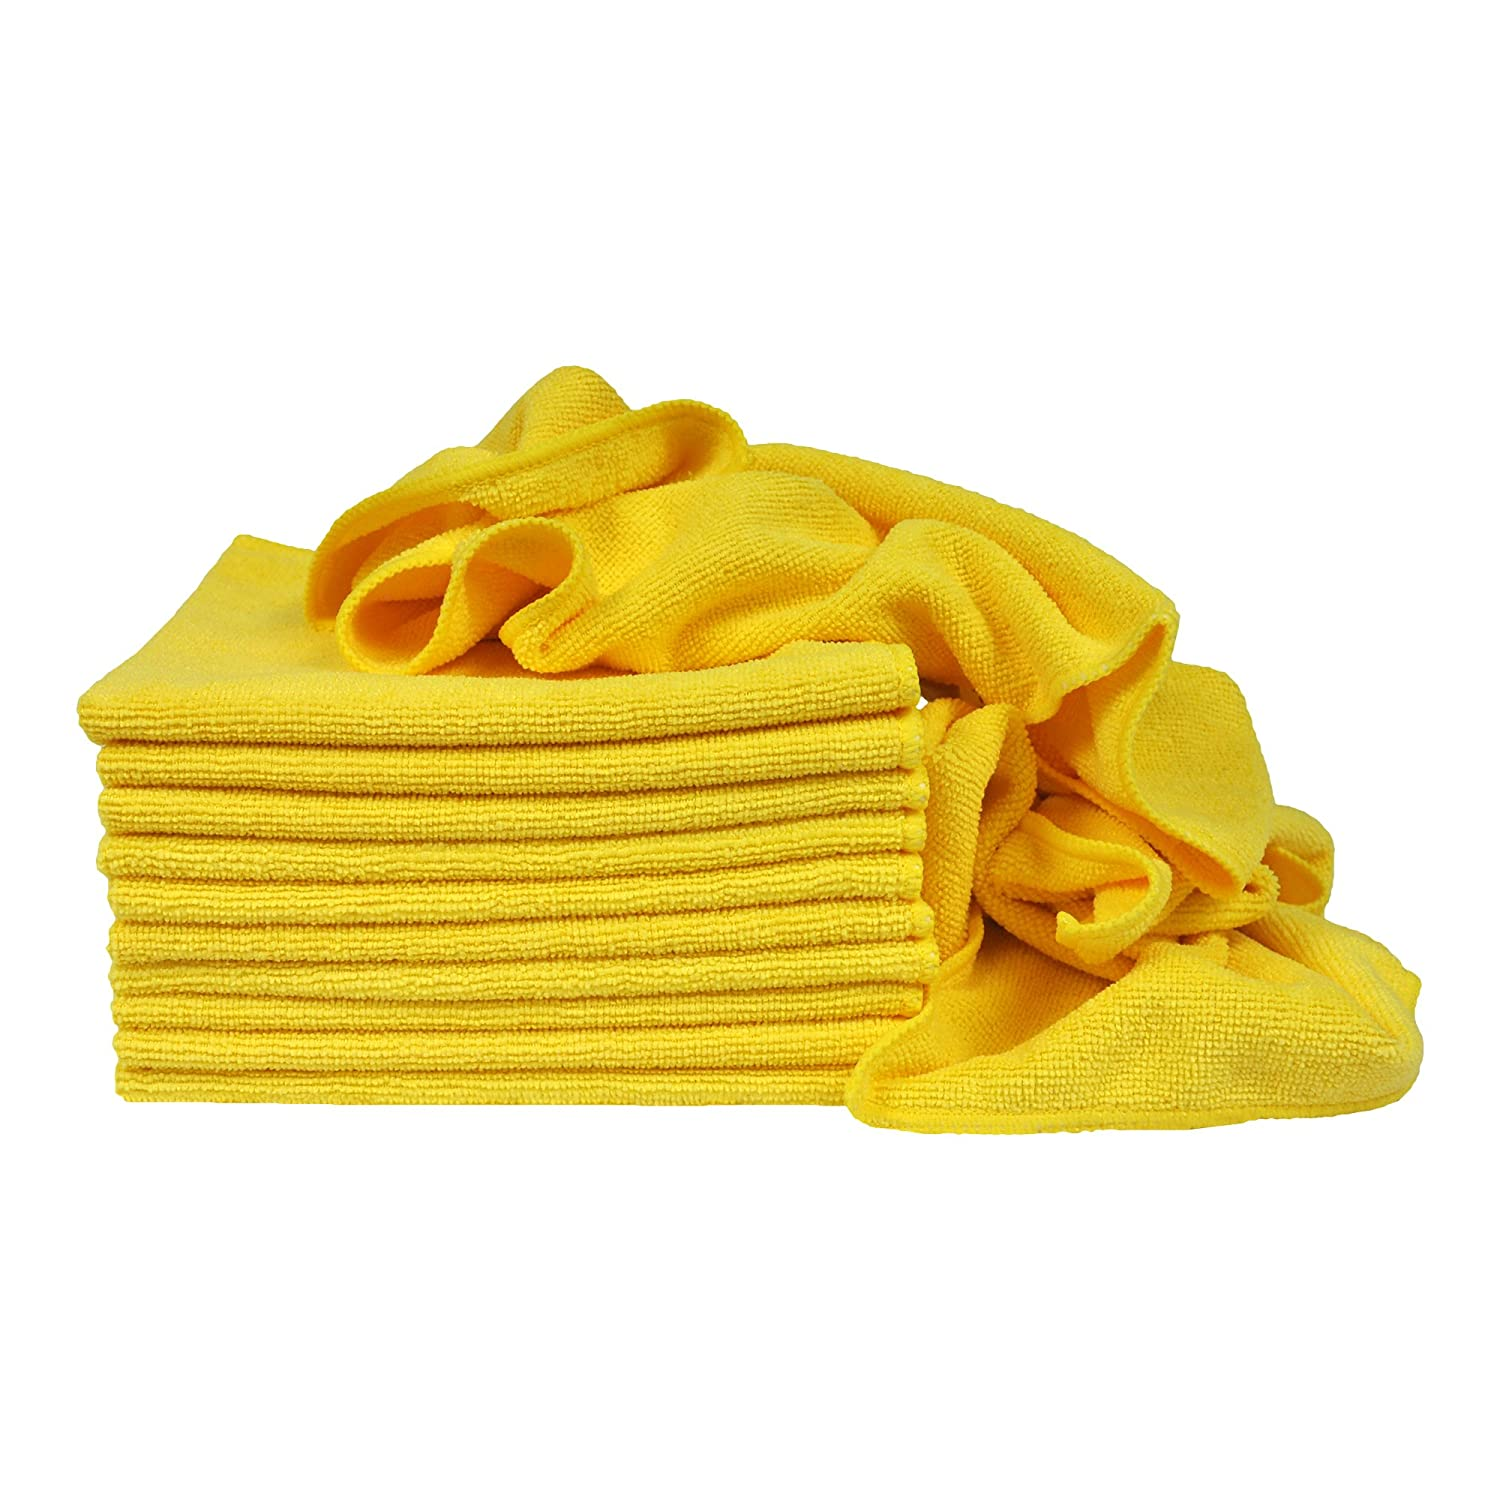 4332948844 Eurow Utility Terry Weave 16 x 16in 240 GSM Microfiber Cleaning Towels Green 12-Pack Eurow /& O/'Reilly Corp